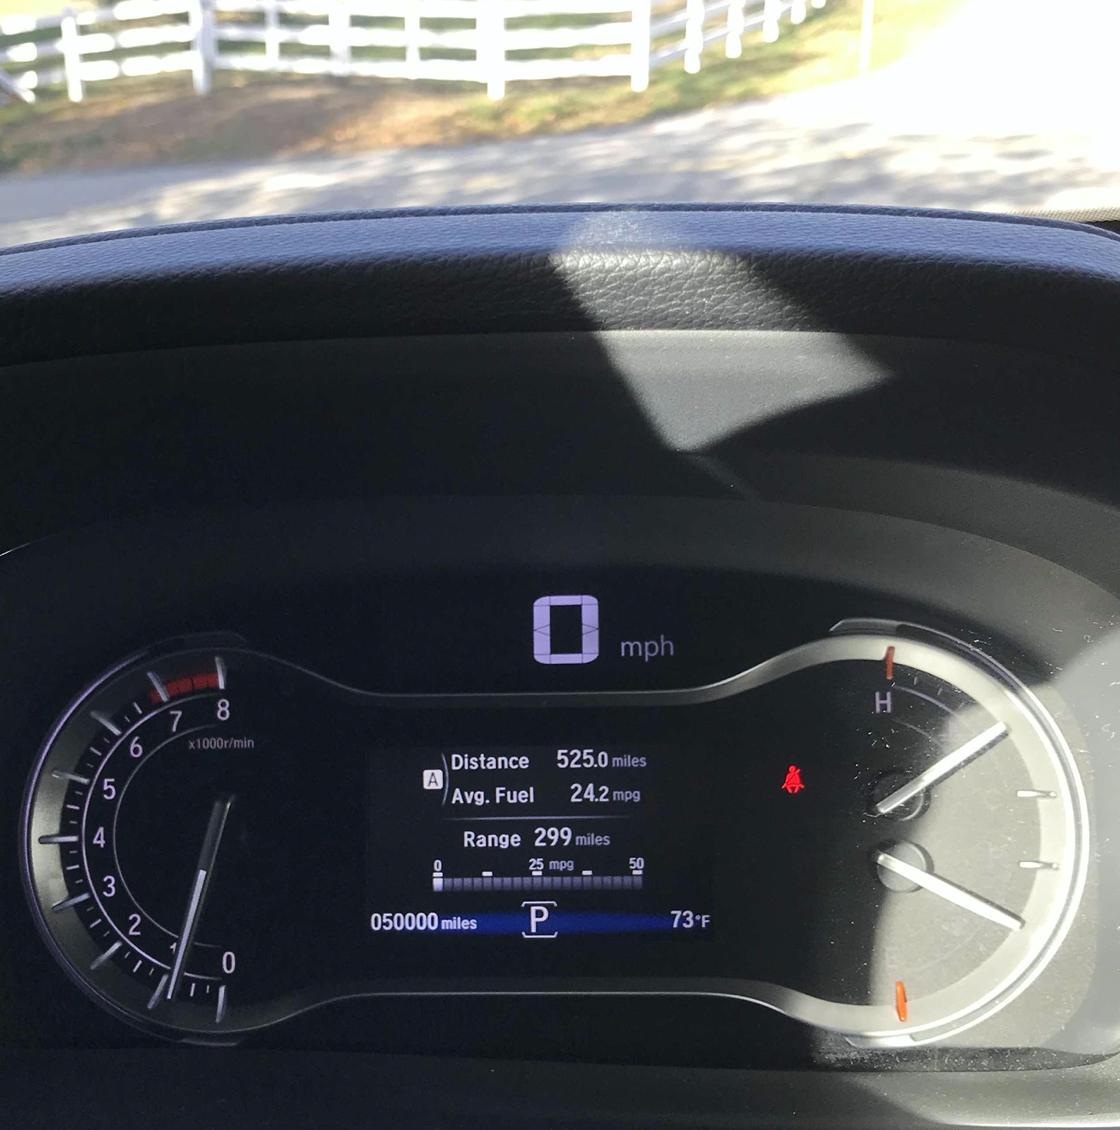 Car instrument cluster with dashboard reading 50000 miles.